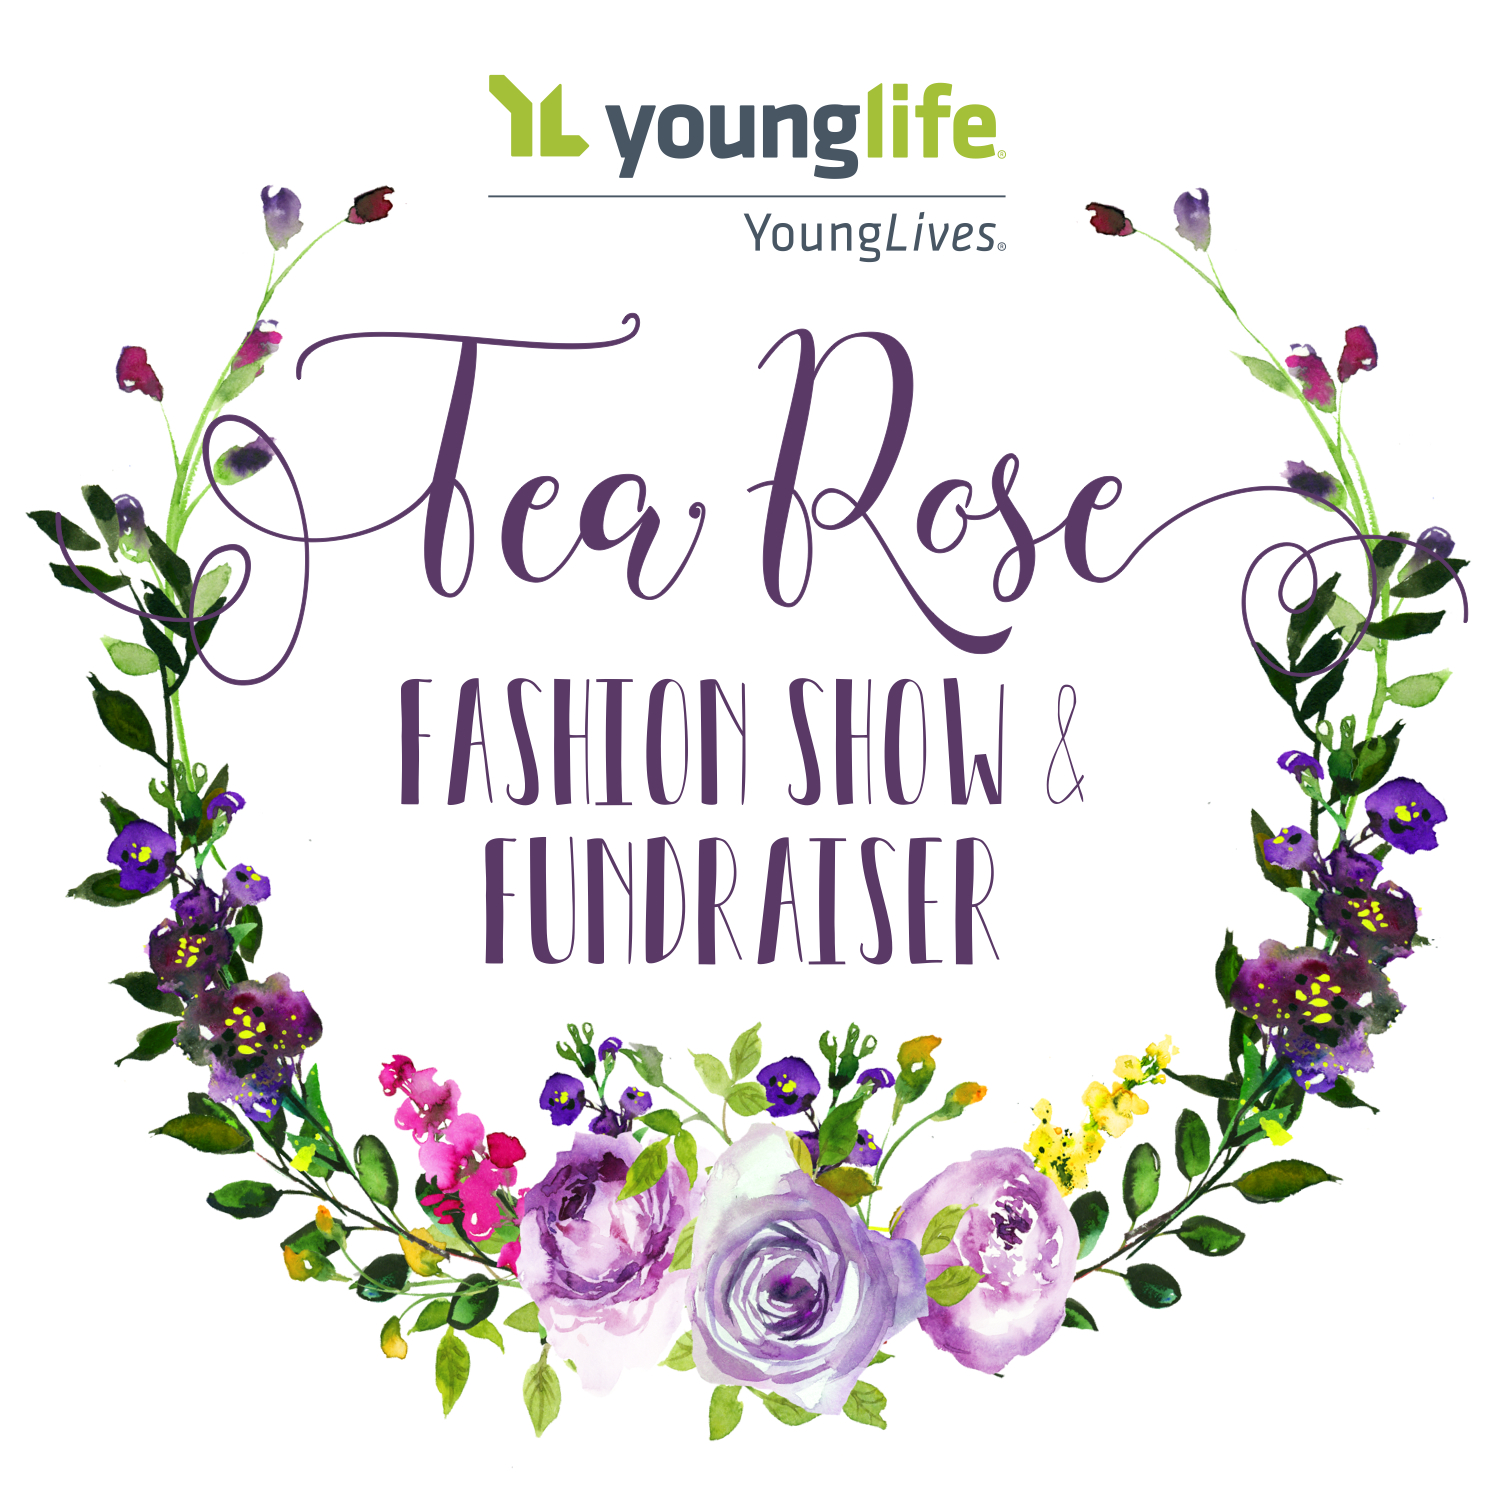 Younglife tea logo video ol